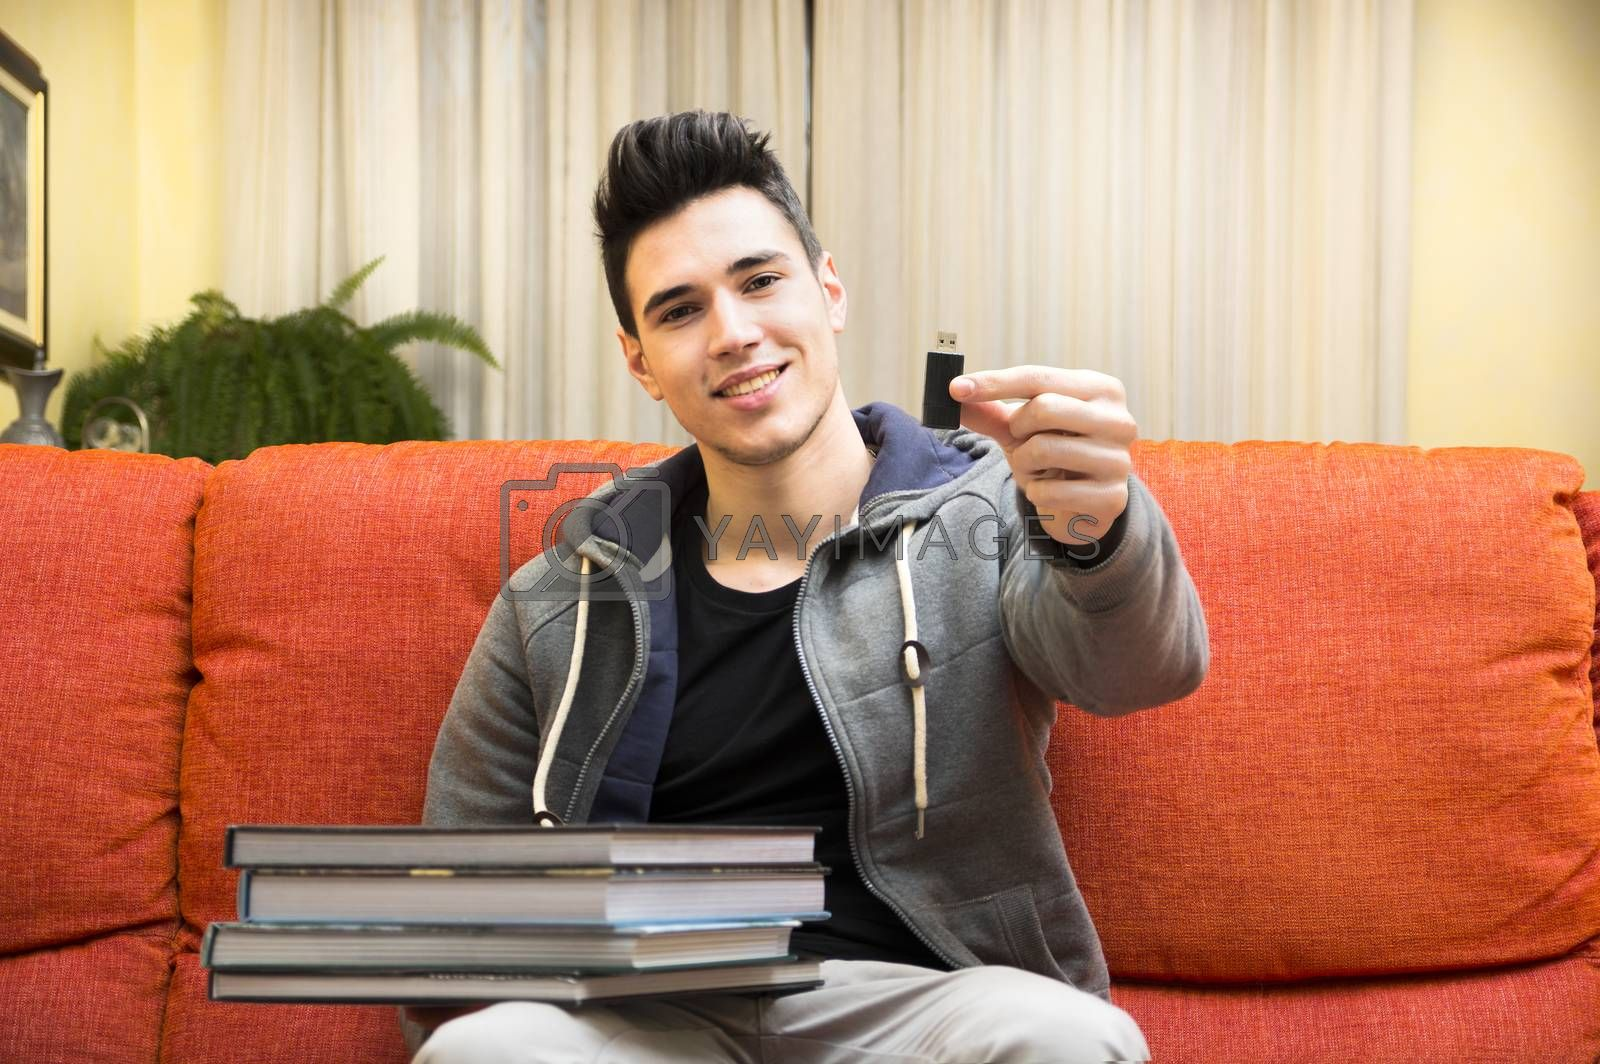 Smiling young man showing difference between light and handy USB key in one hand and heavy books on other hand